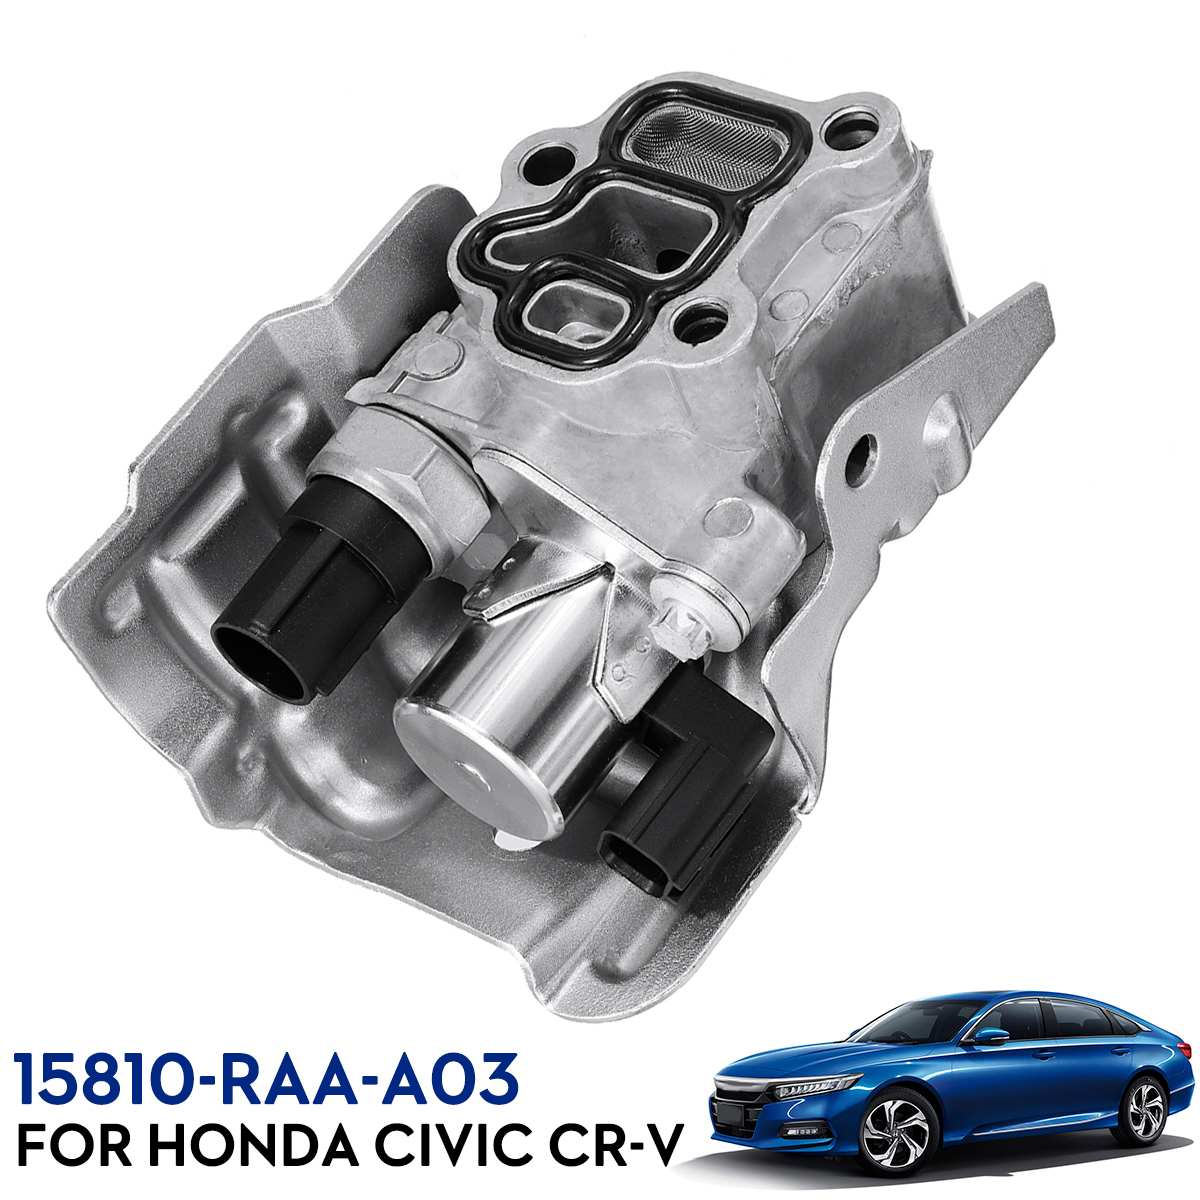 Solenoid Spool Valve 15810 RAA A02 15810RAAA02 15810 RAA A03 15810RAAA03 for Honda for ACCORD CRV for CIVIC RSX ELEMENT|Valves & Parts| |  - title=